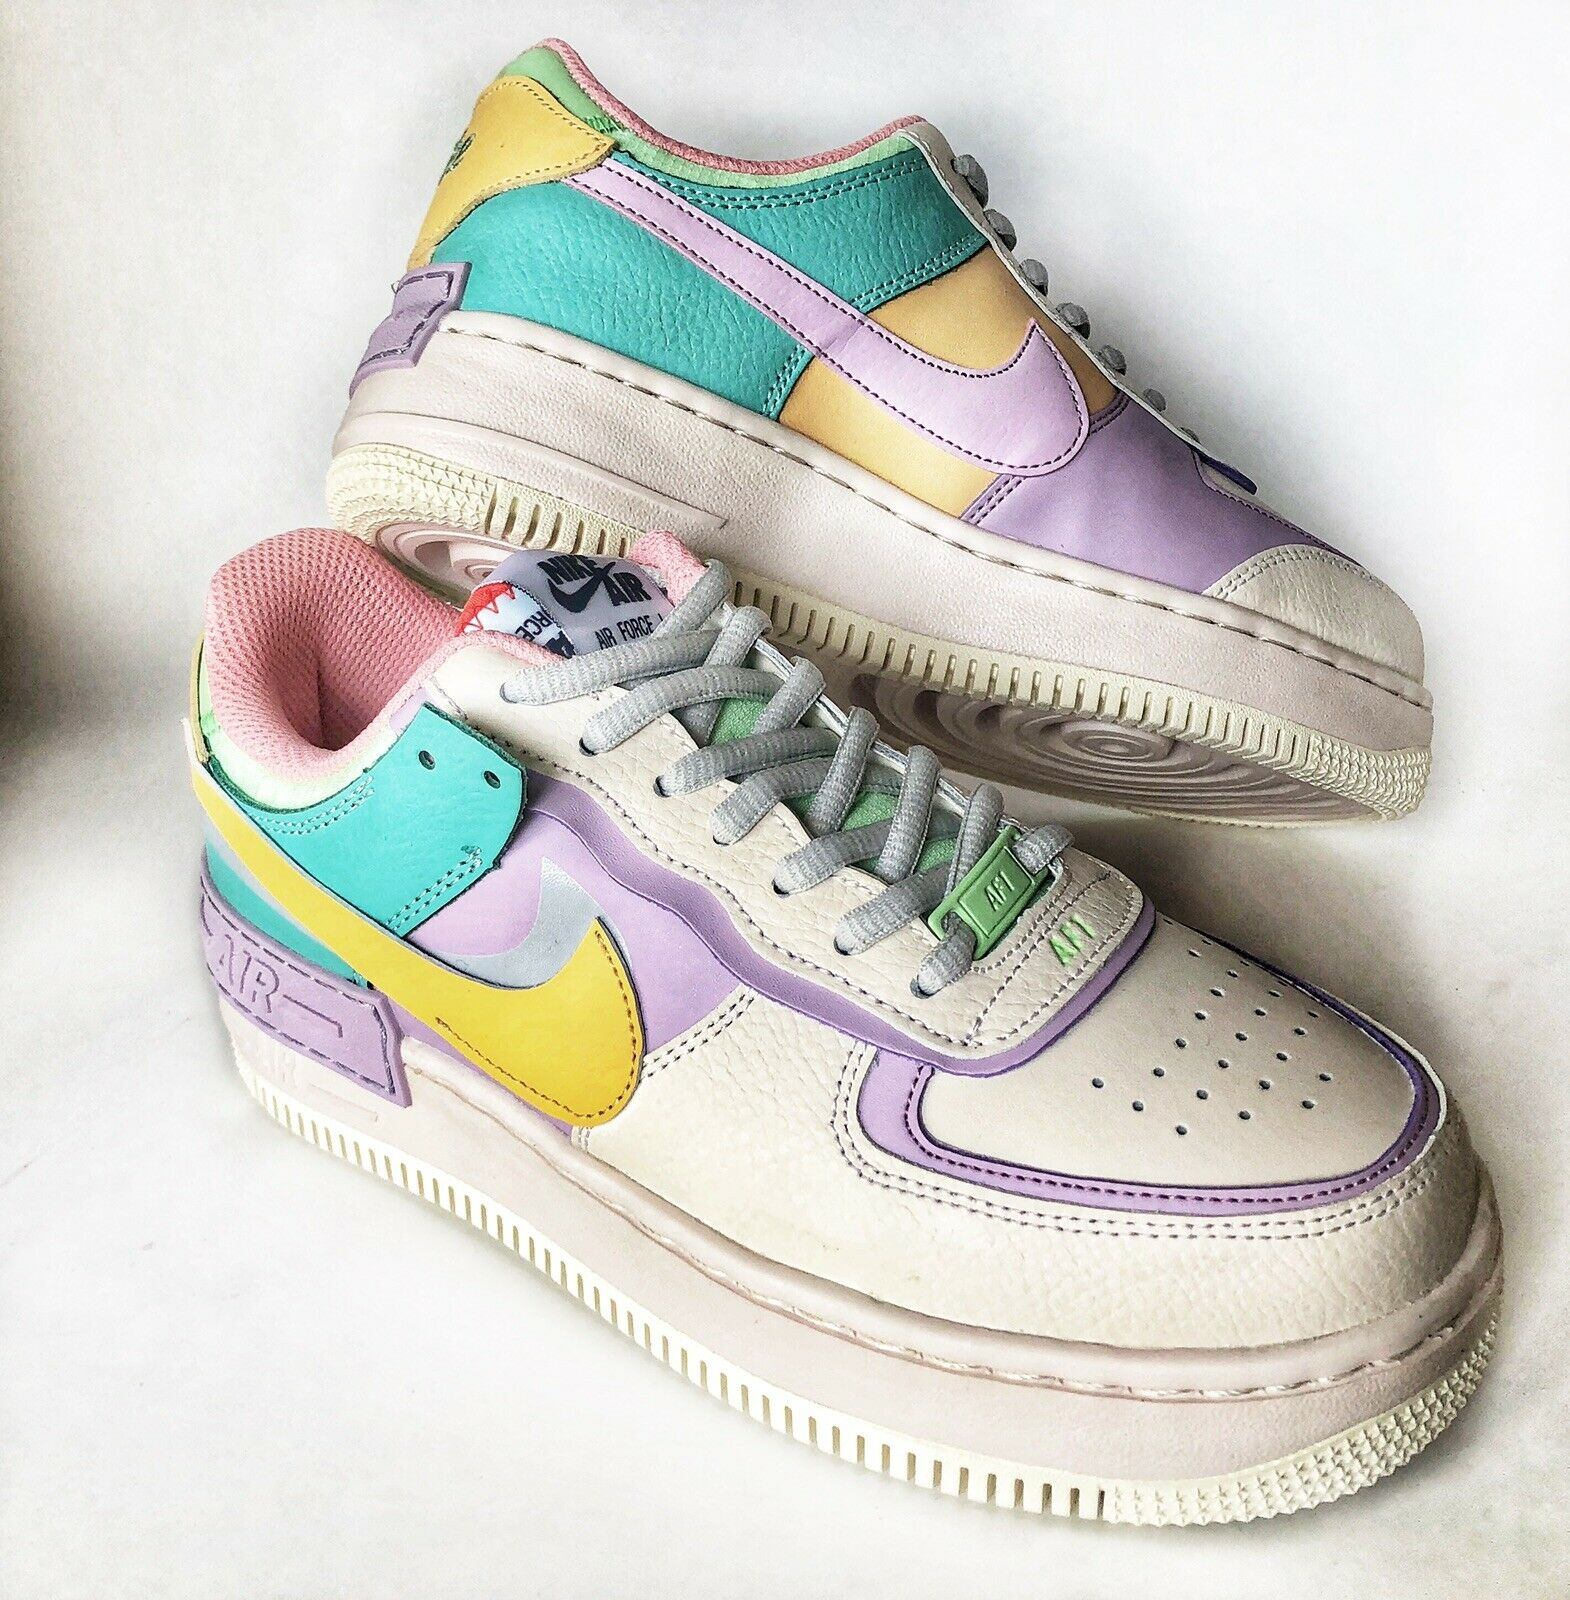 Nike Air Force 1 Shadow Pale Ivory Tiendamia Com Described as, air in a box, this shoe set the benchmark for packed features in a simple, clean style. nike air force 1 shadow pale ivory womens shoes sneakers af1 5 5 6 7 7 5 8 8 5